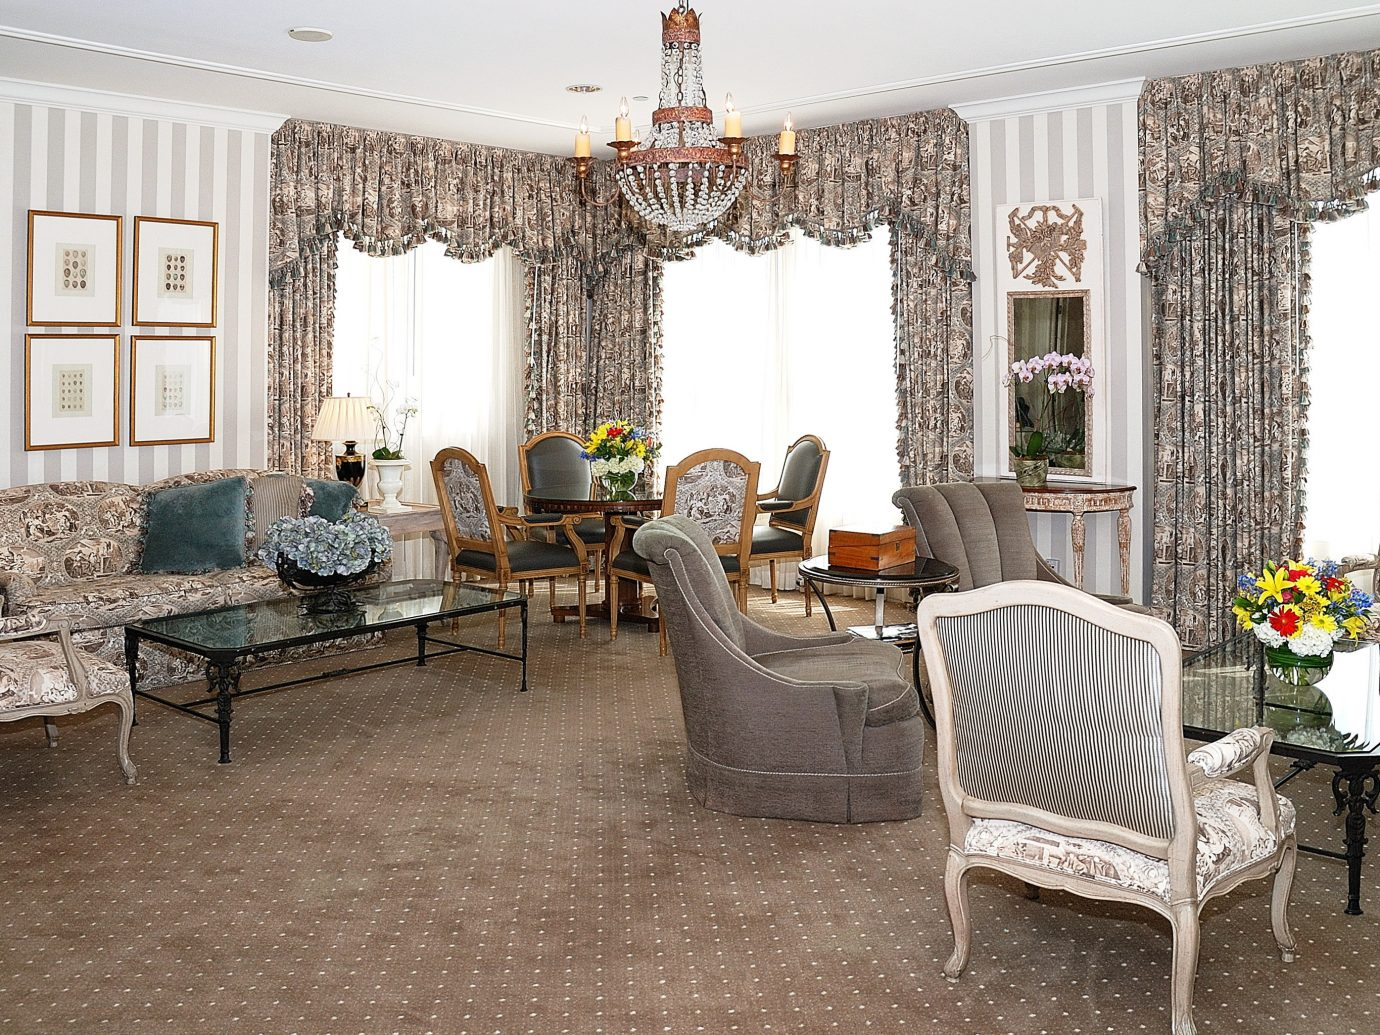 City Classic Hotels Living floor room indoor chair dining room property living room furniture estate home interior design real estate cottage porch farmhouse area decorated several